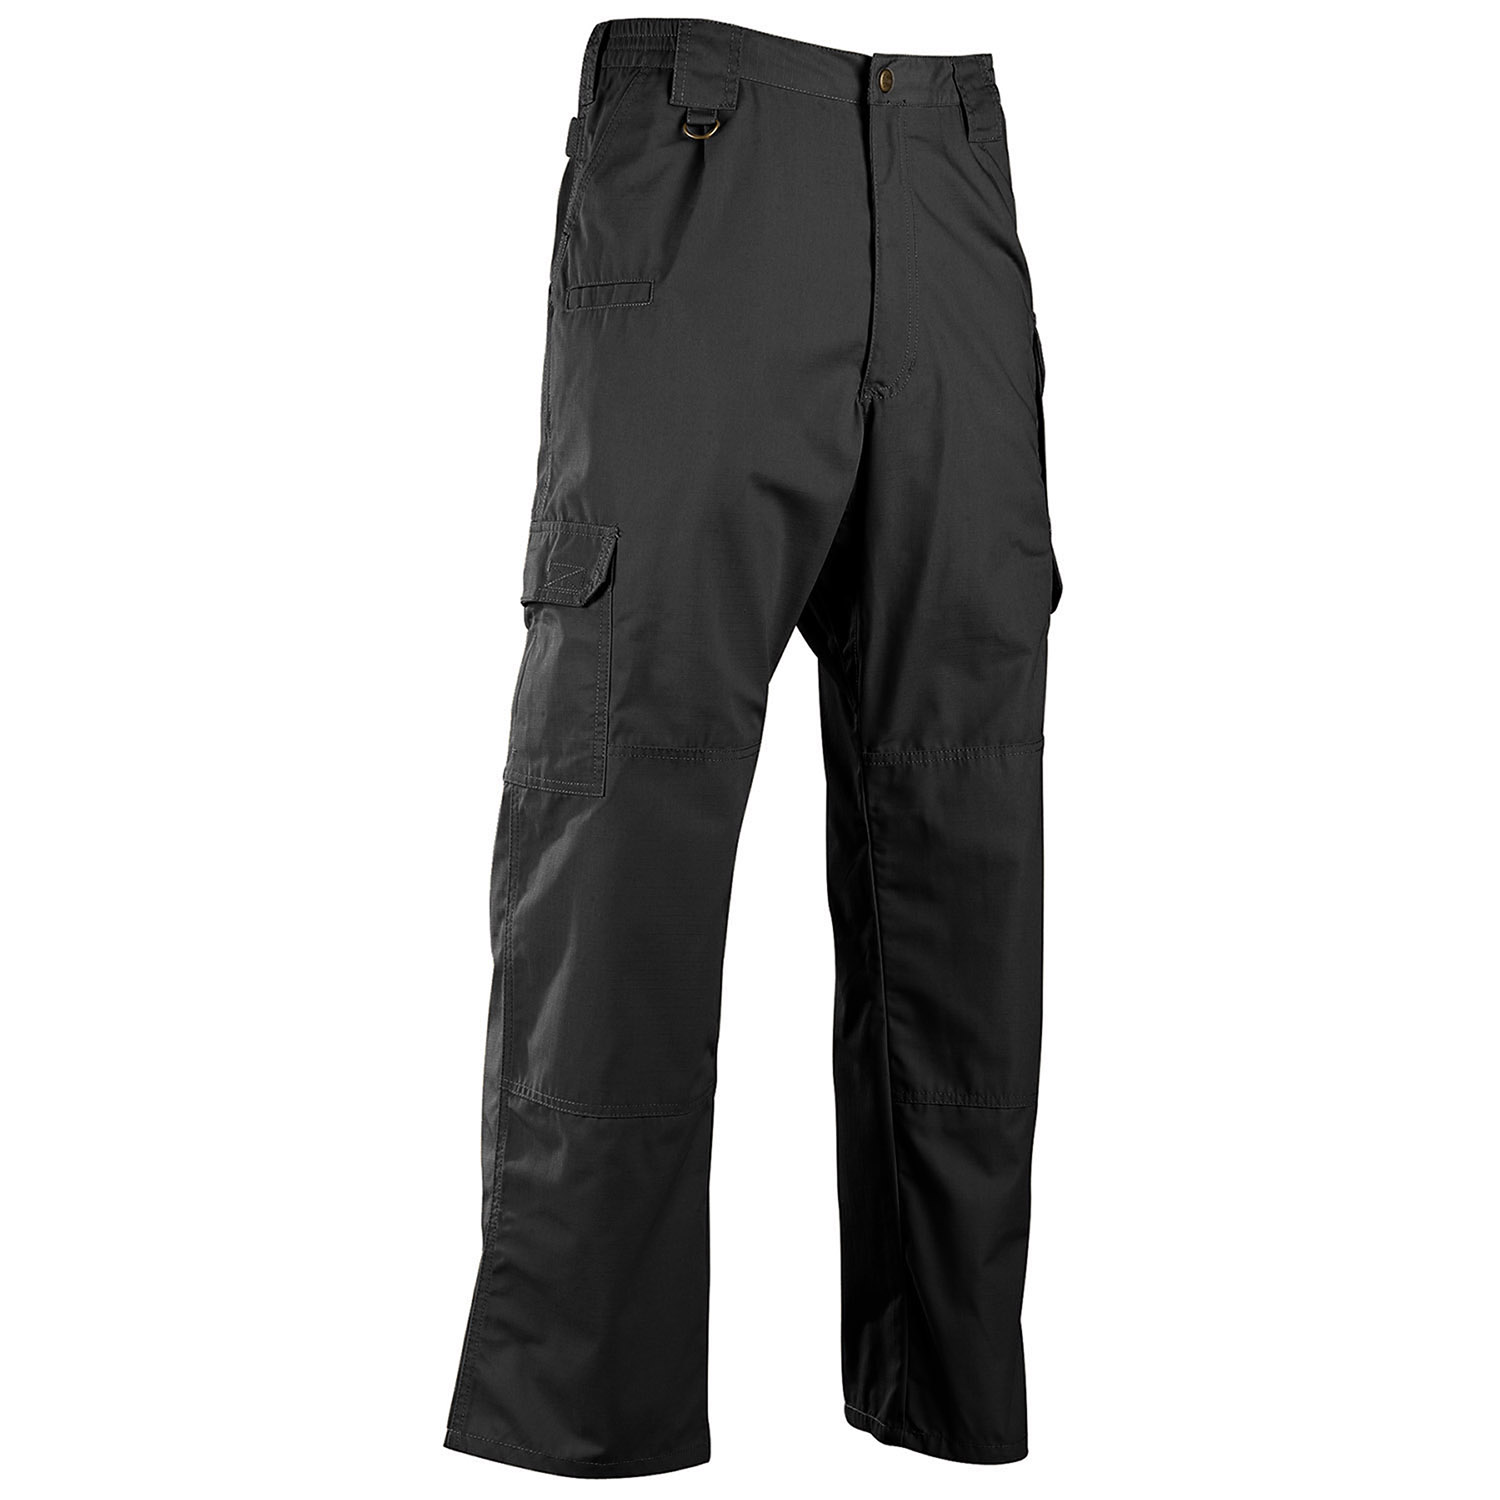 6ab50d81ef 5.11 Tactical TacLite Pro Mens Ripstop Pants